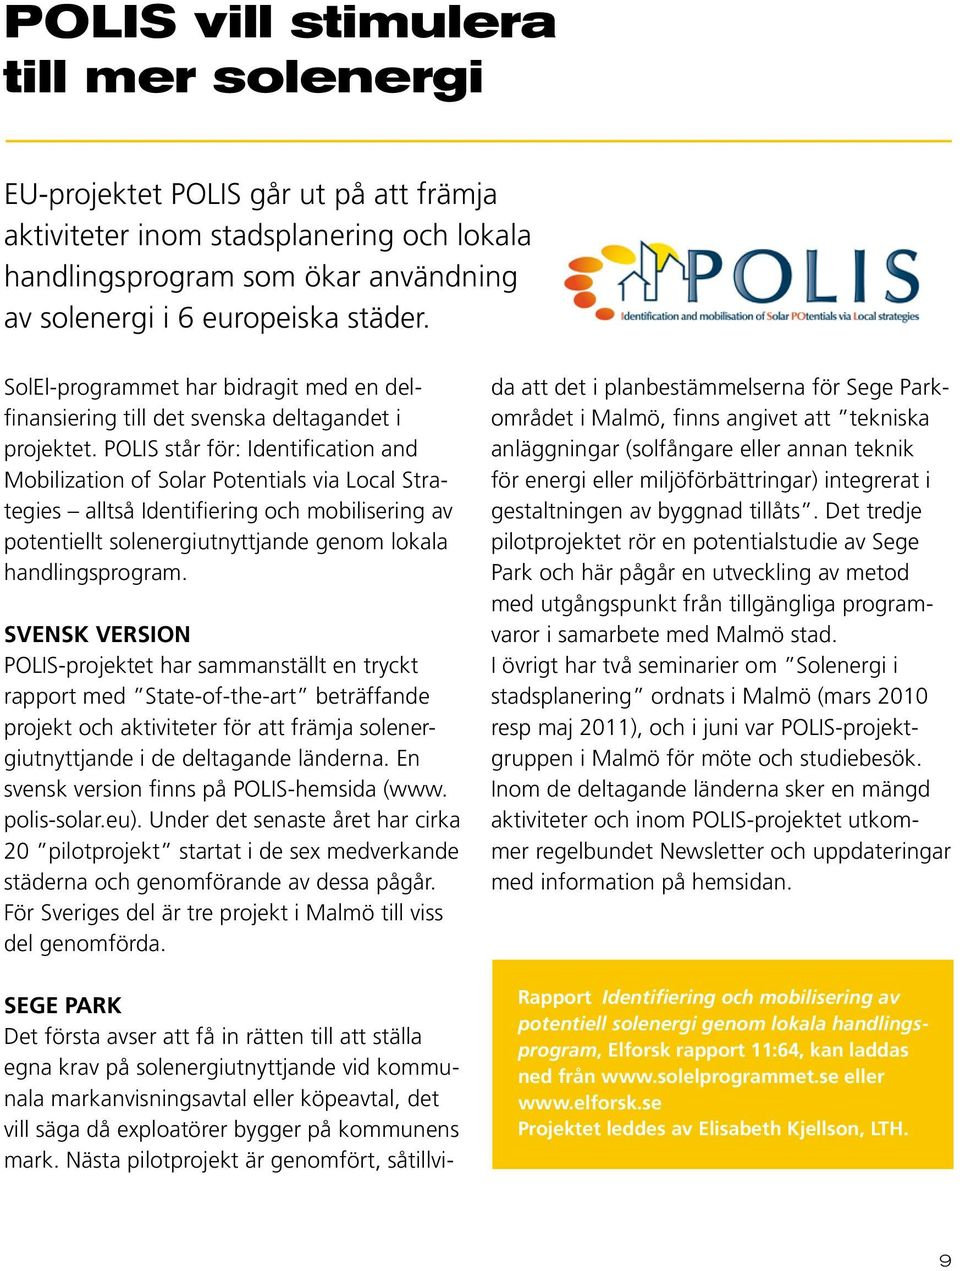 POLIS står för: Identification and Mobilization of Solar Potentials via Local Strategies alltså Identifiering och mobilisering av potentiellt solenergiutnyttjande genom lokala handlingsprogram.